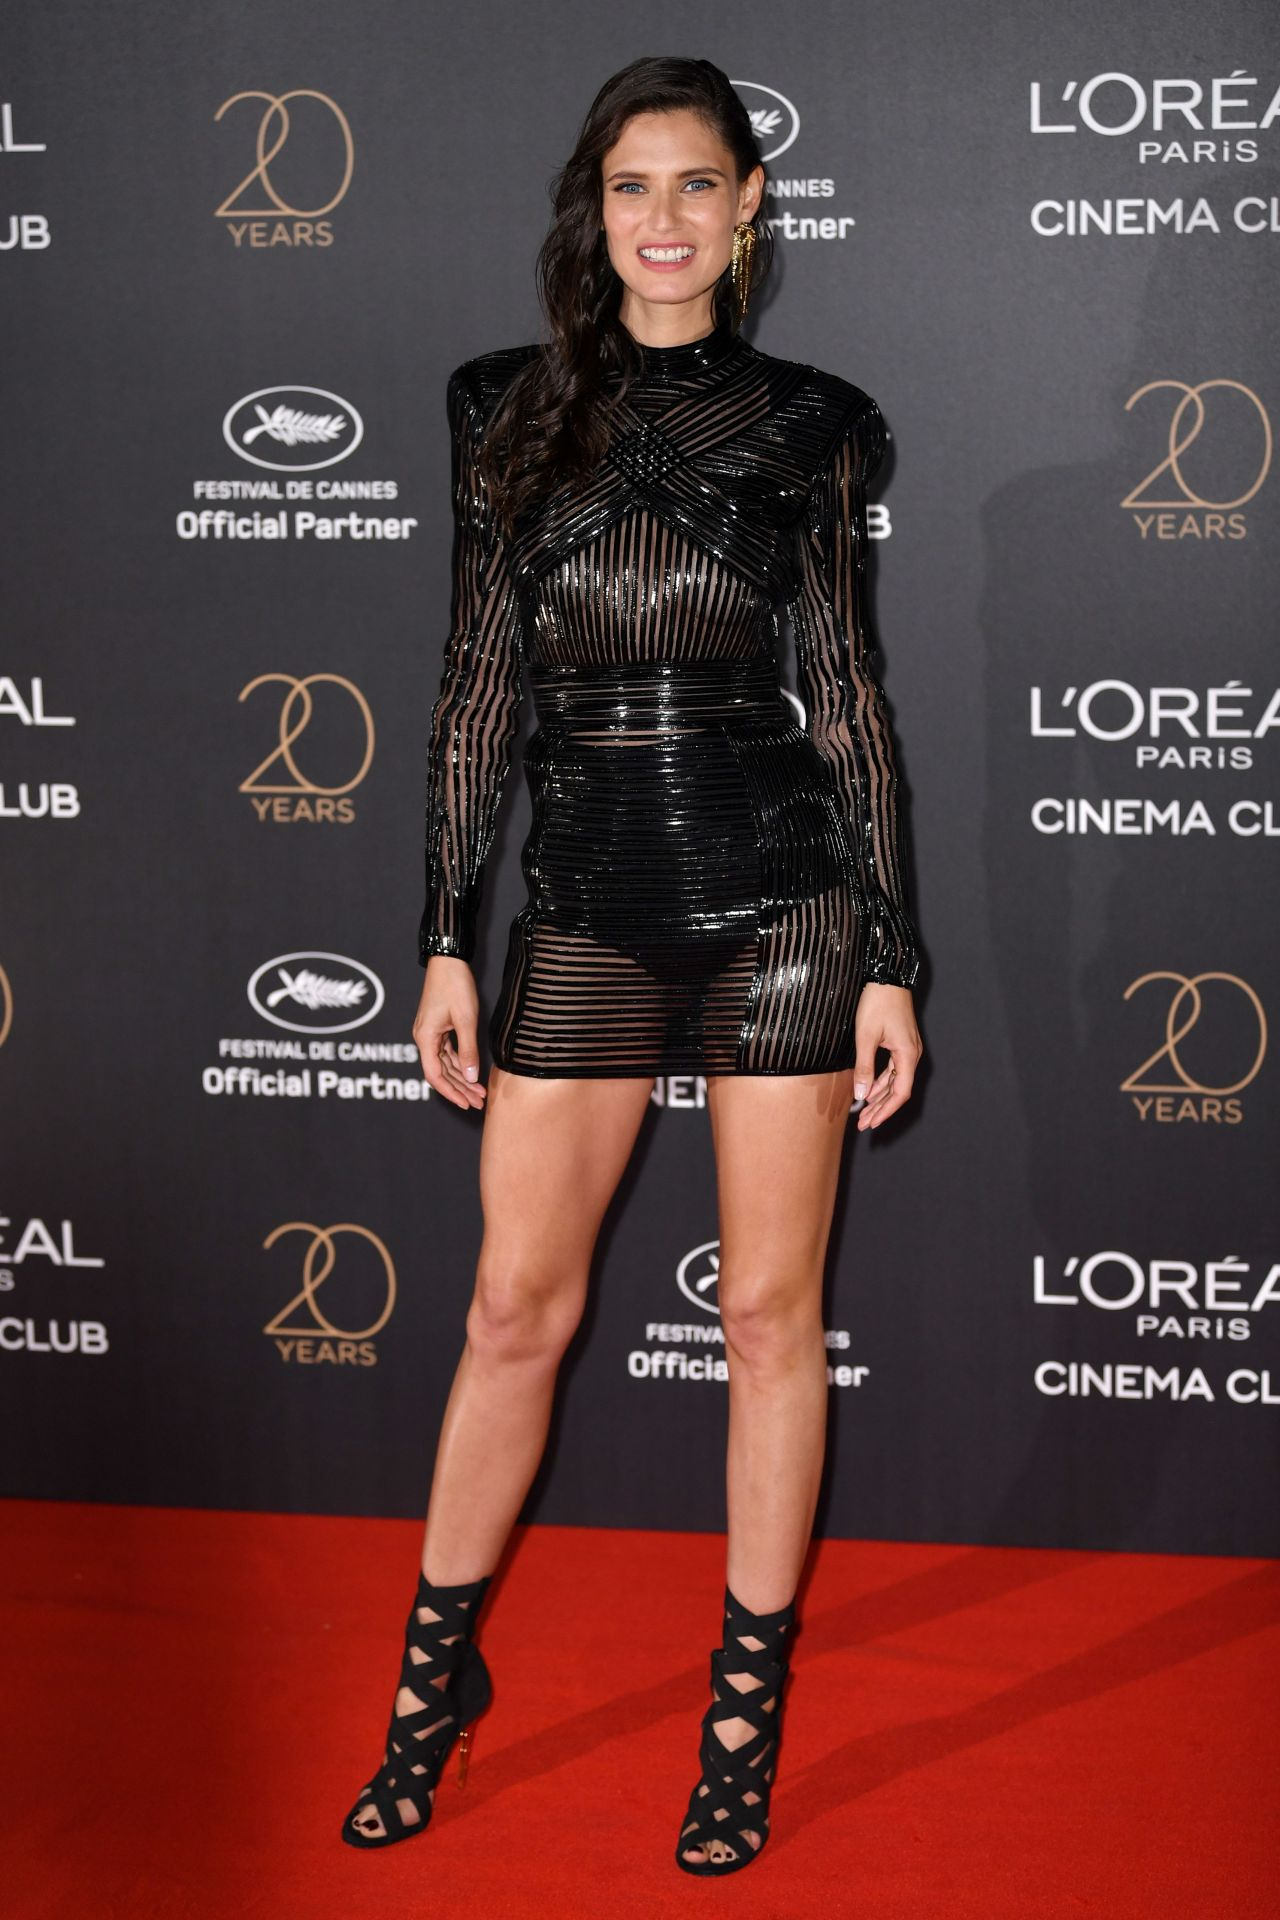 bianca-balti-on-red-carpet-l-oreal-20th-anniversary-party-in-cannes-05-24-2017-1